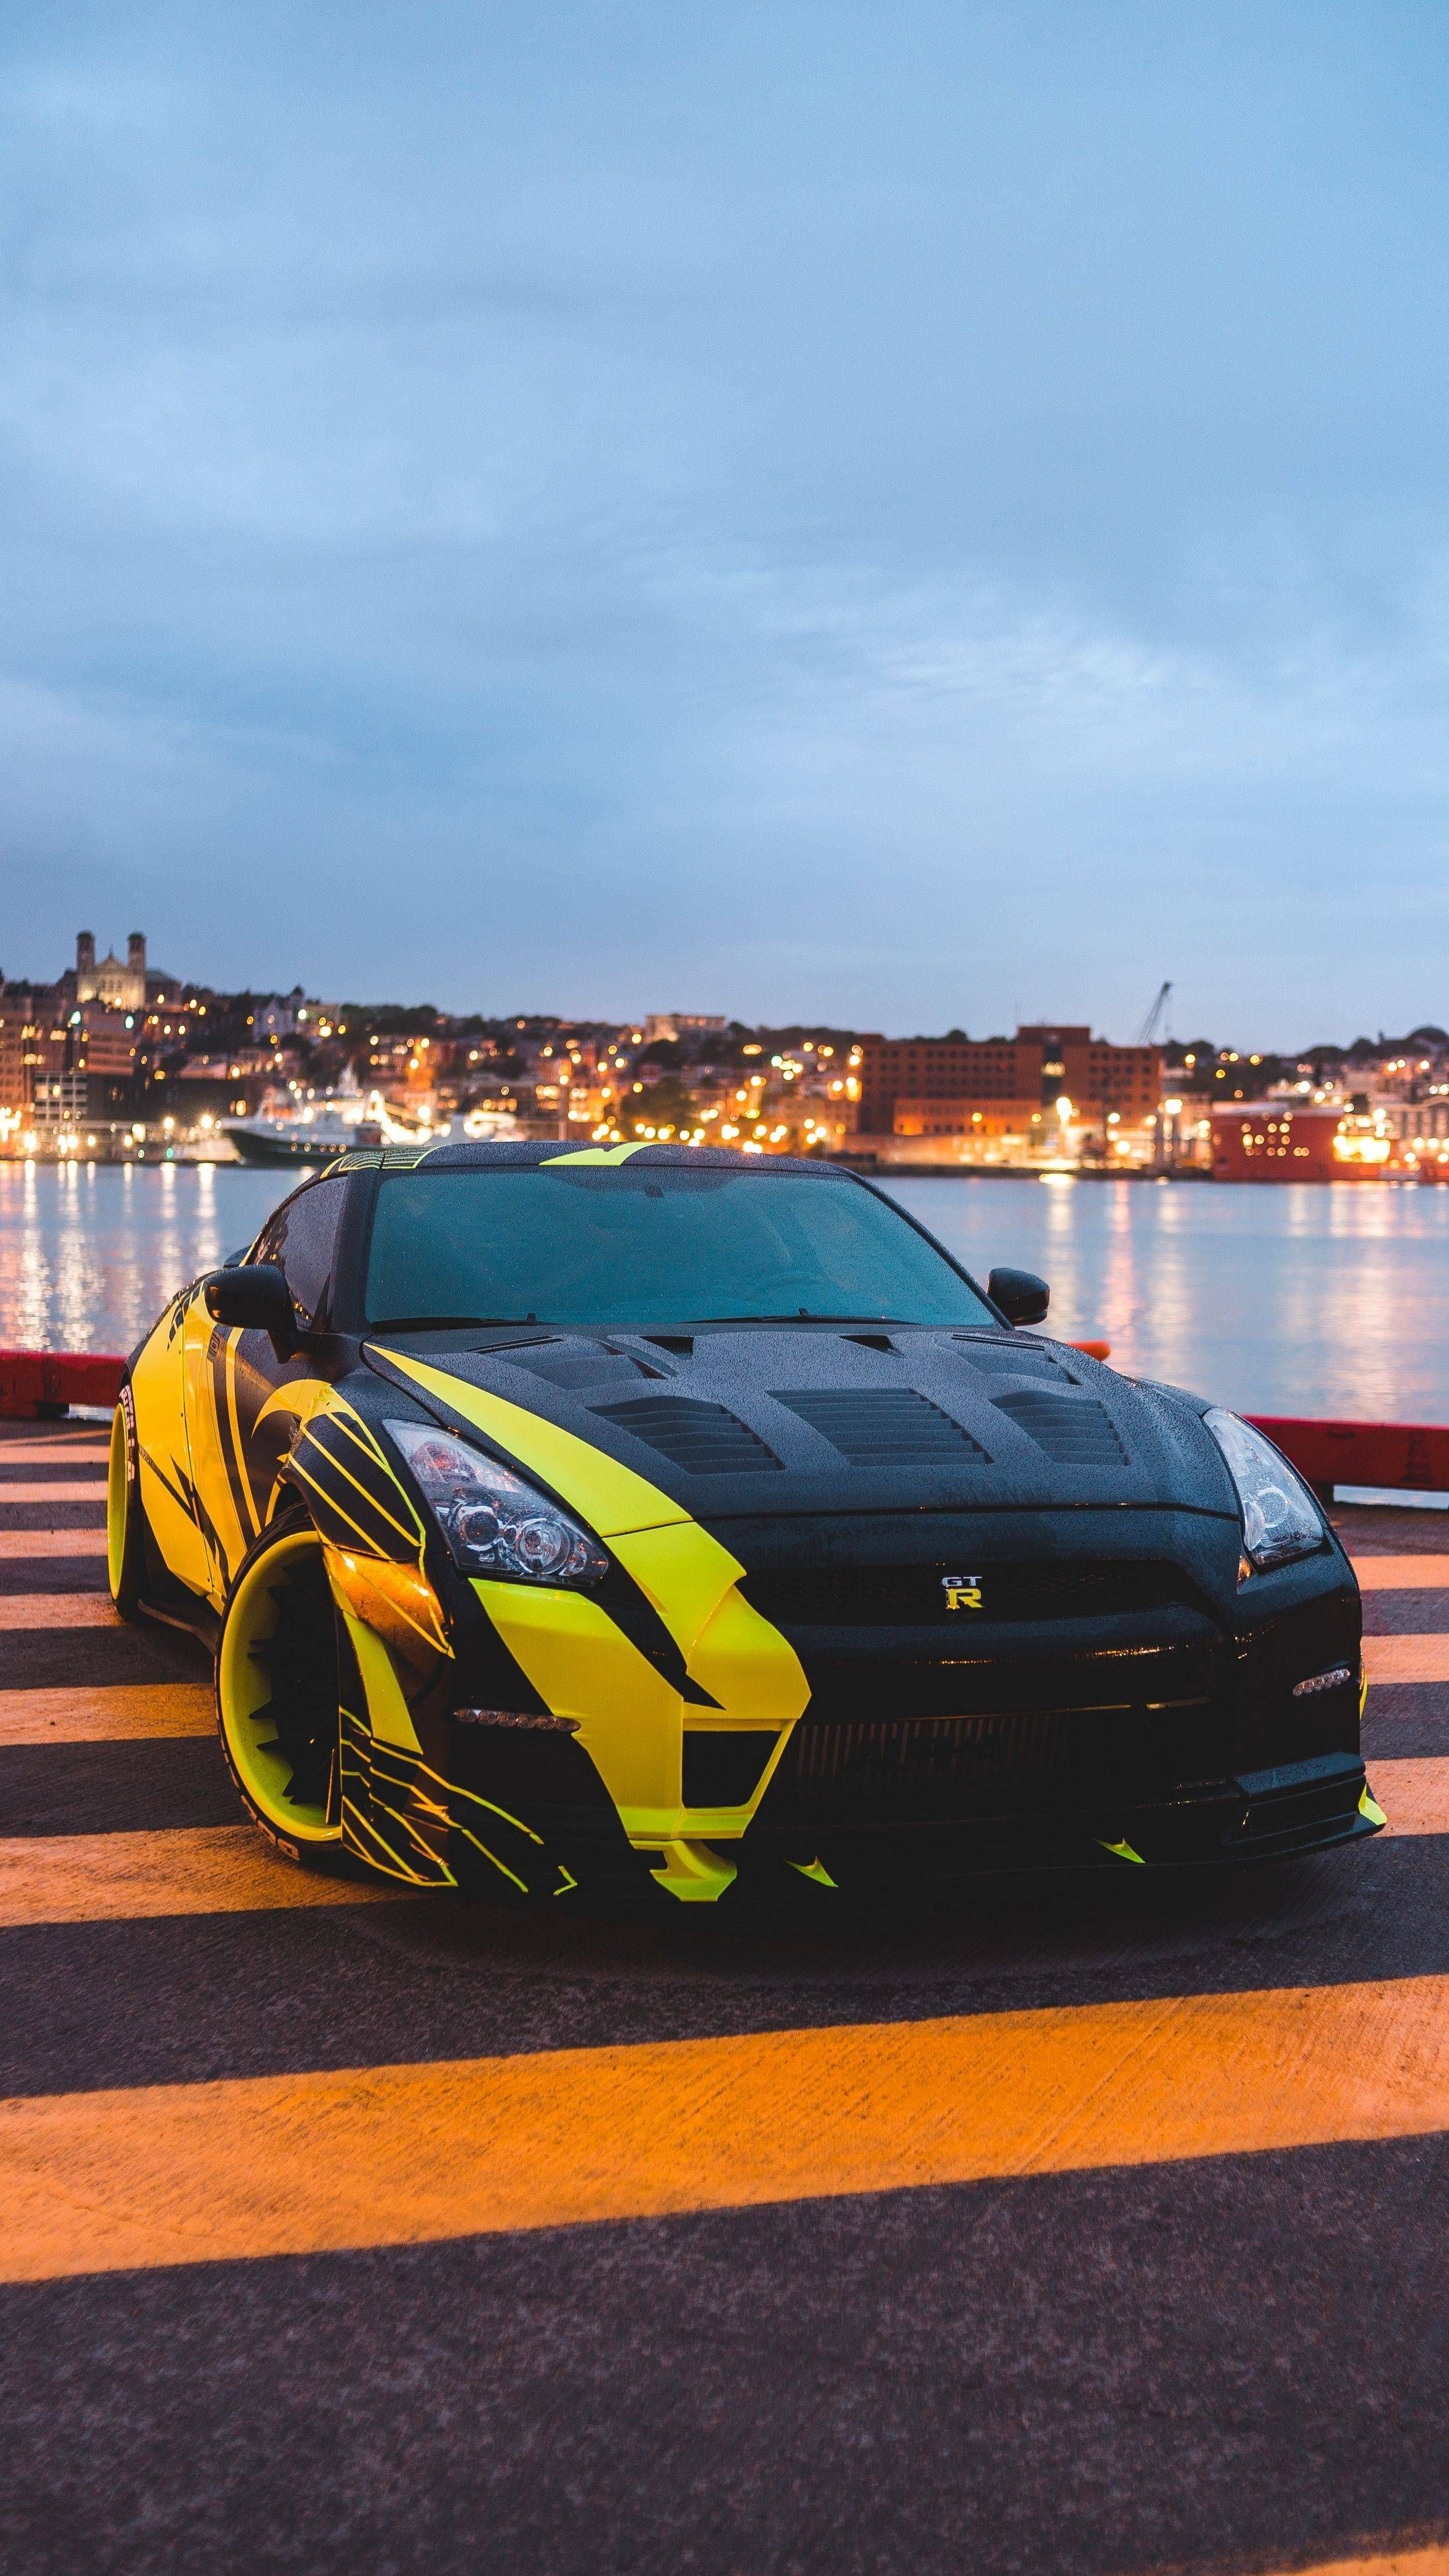 The Latest Iphone11 Iphone11 Pro Iphone 11 Pro Max Mobile Phone Hd Wallpapers Free Download Nissan Gtr Nissan Sports Car In 2021 Nissan Gtr Nissan Nissan Gtr R35